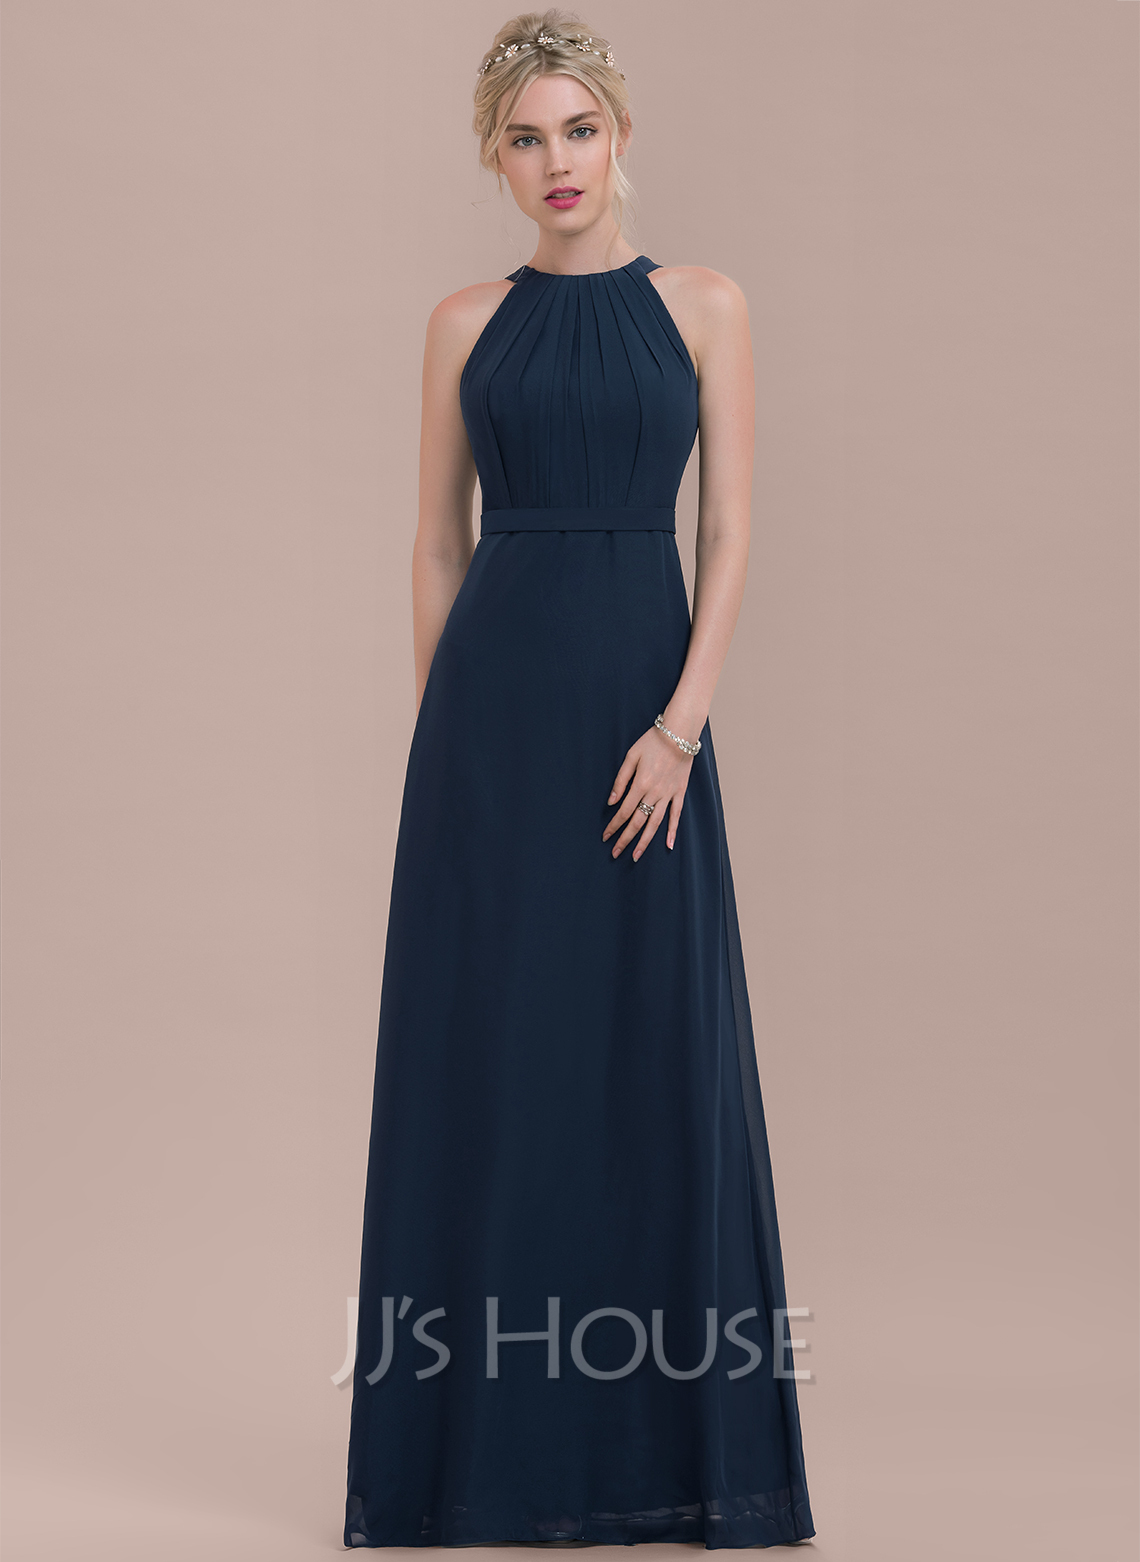 ec5ac462aea A-Line Princess Scoop Neck Floor-Length Chiffon Bridesmaid Dress With  Ruffle. Loading zoom